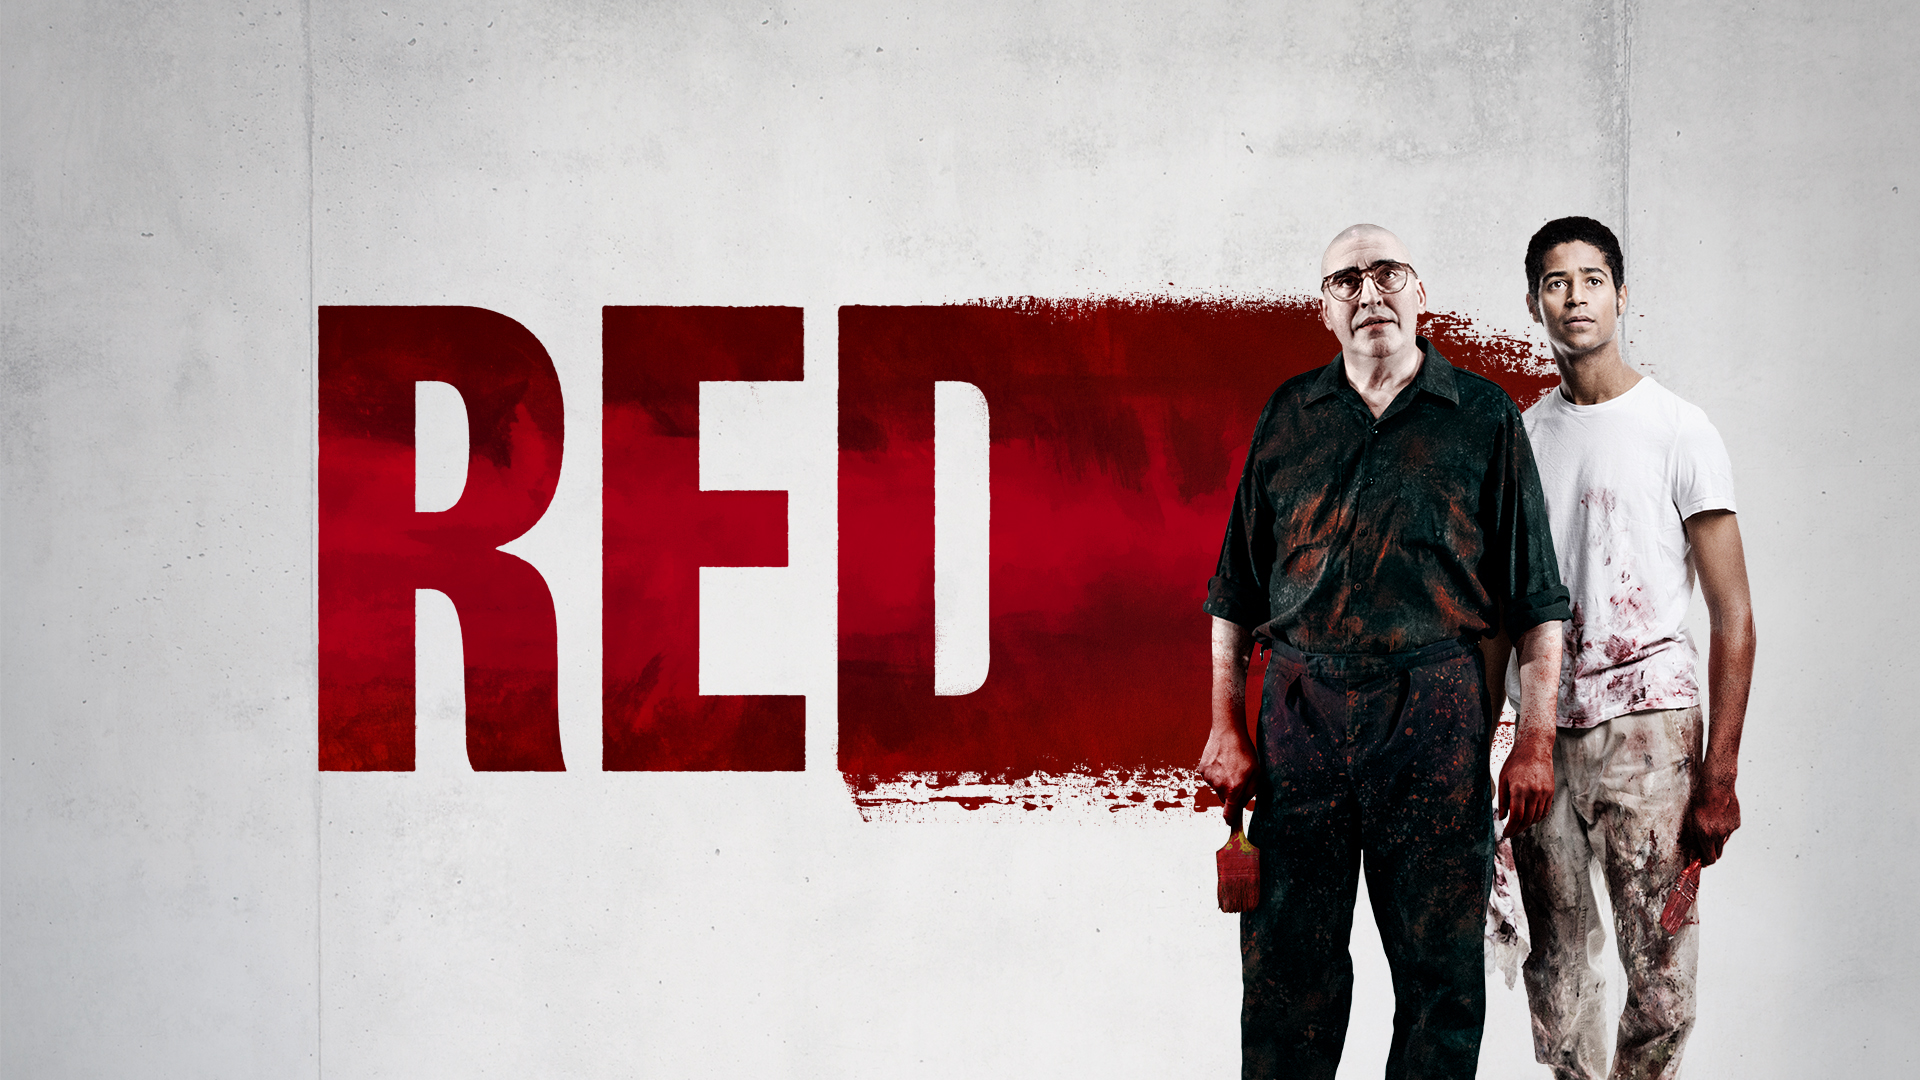 Red: A Broadway Play - Stream now on Stage 2 View